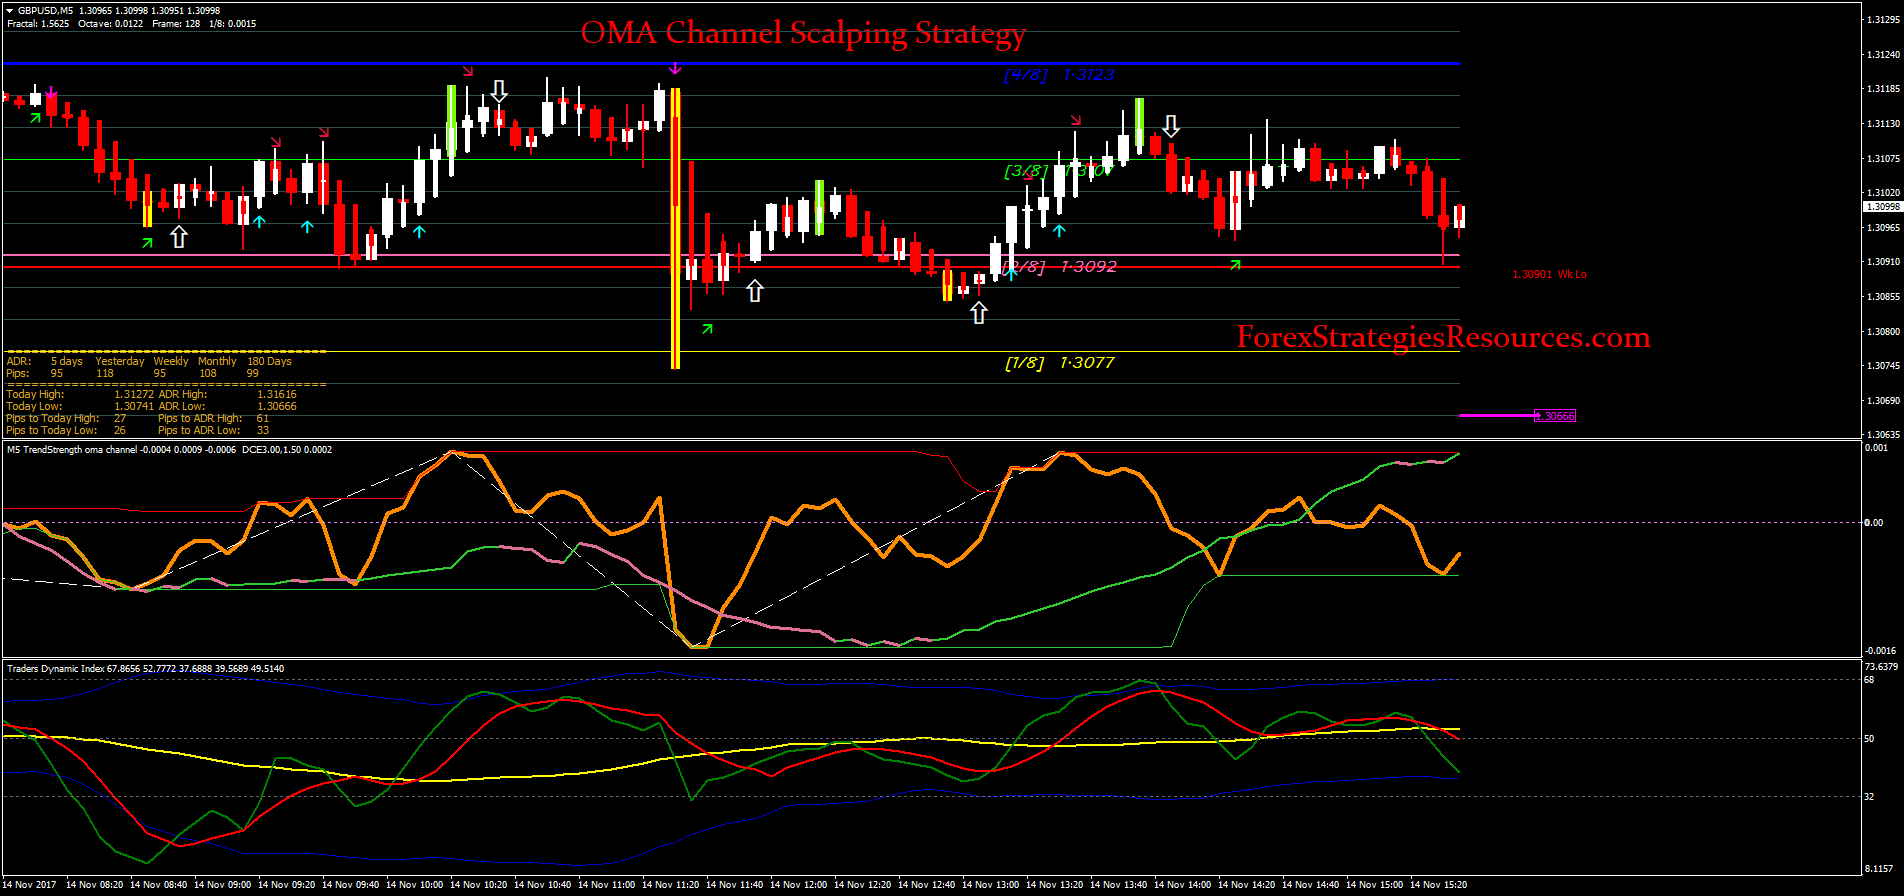 Oma Channel Scalping Strategy - Forex Strategies - Forex